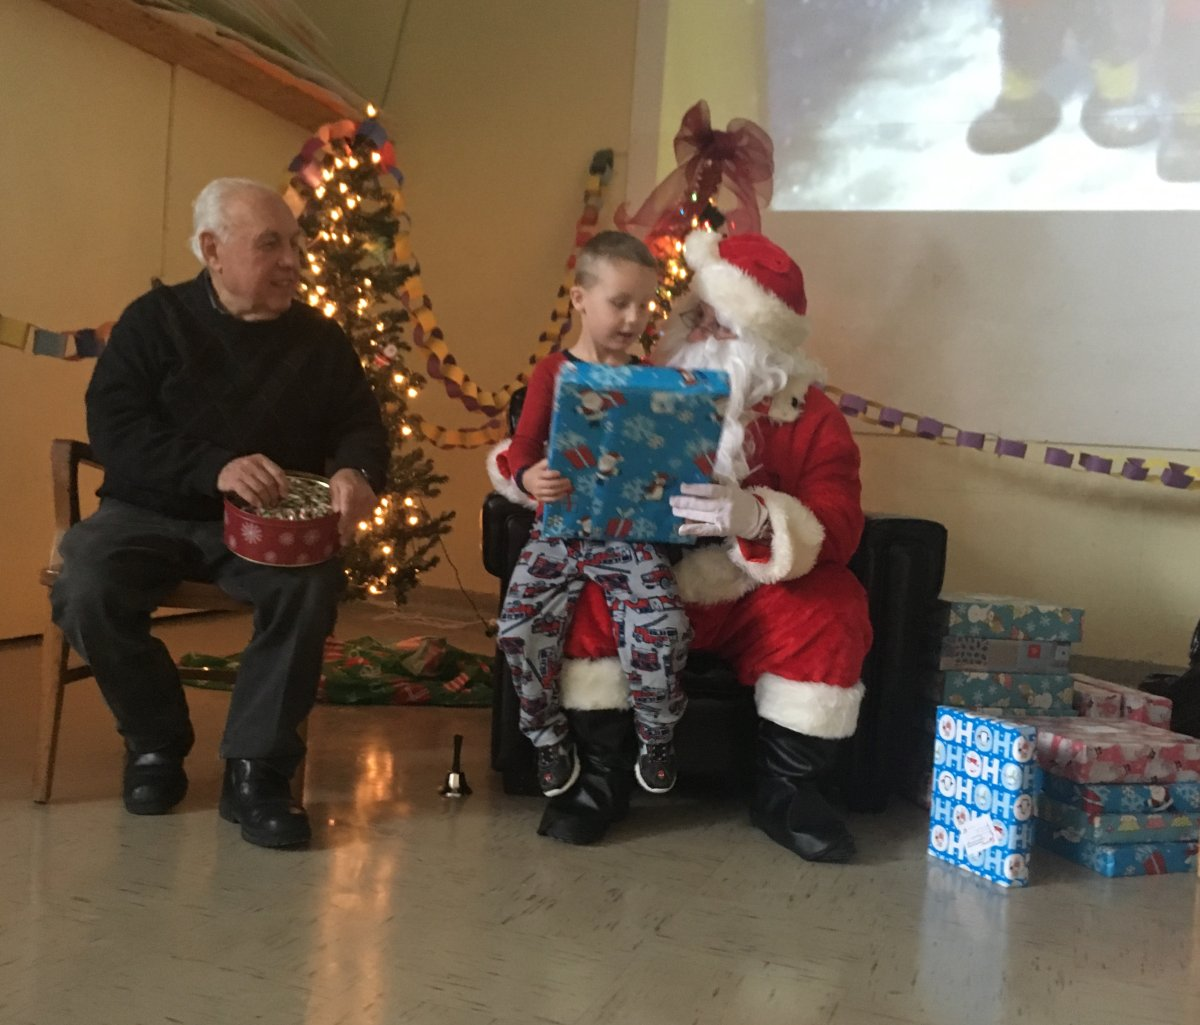 Santa Claus teams up with Generations Foundation to deliver gifts to kids in St. Willibrord School in Châteauguay, Tuesday, December 13, 2016.